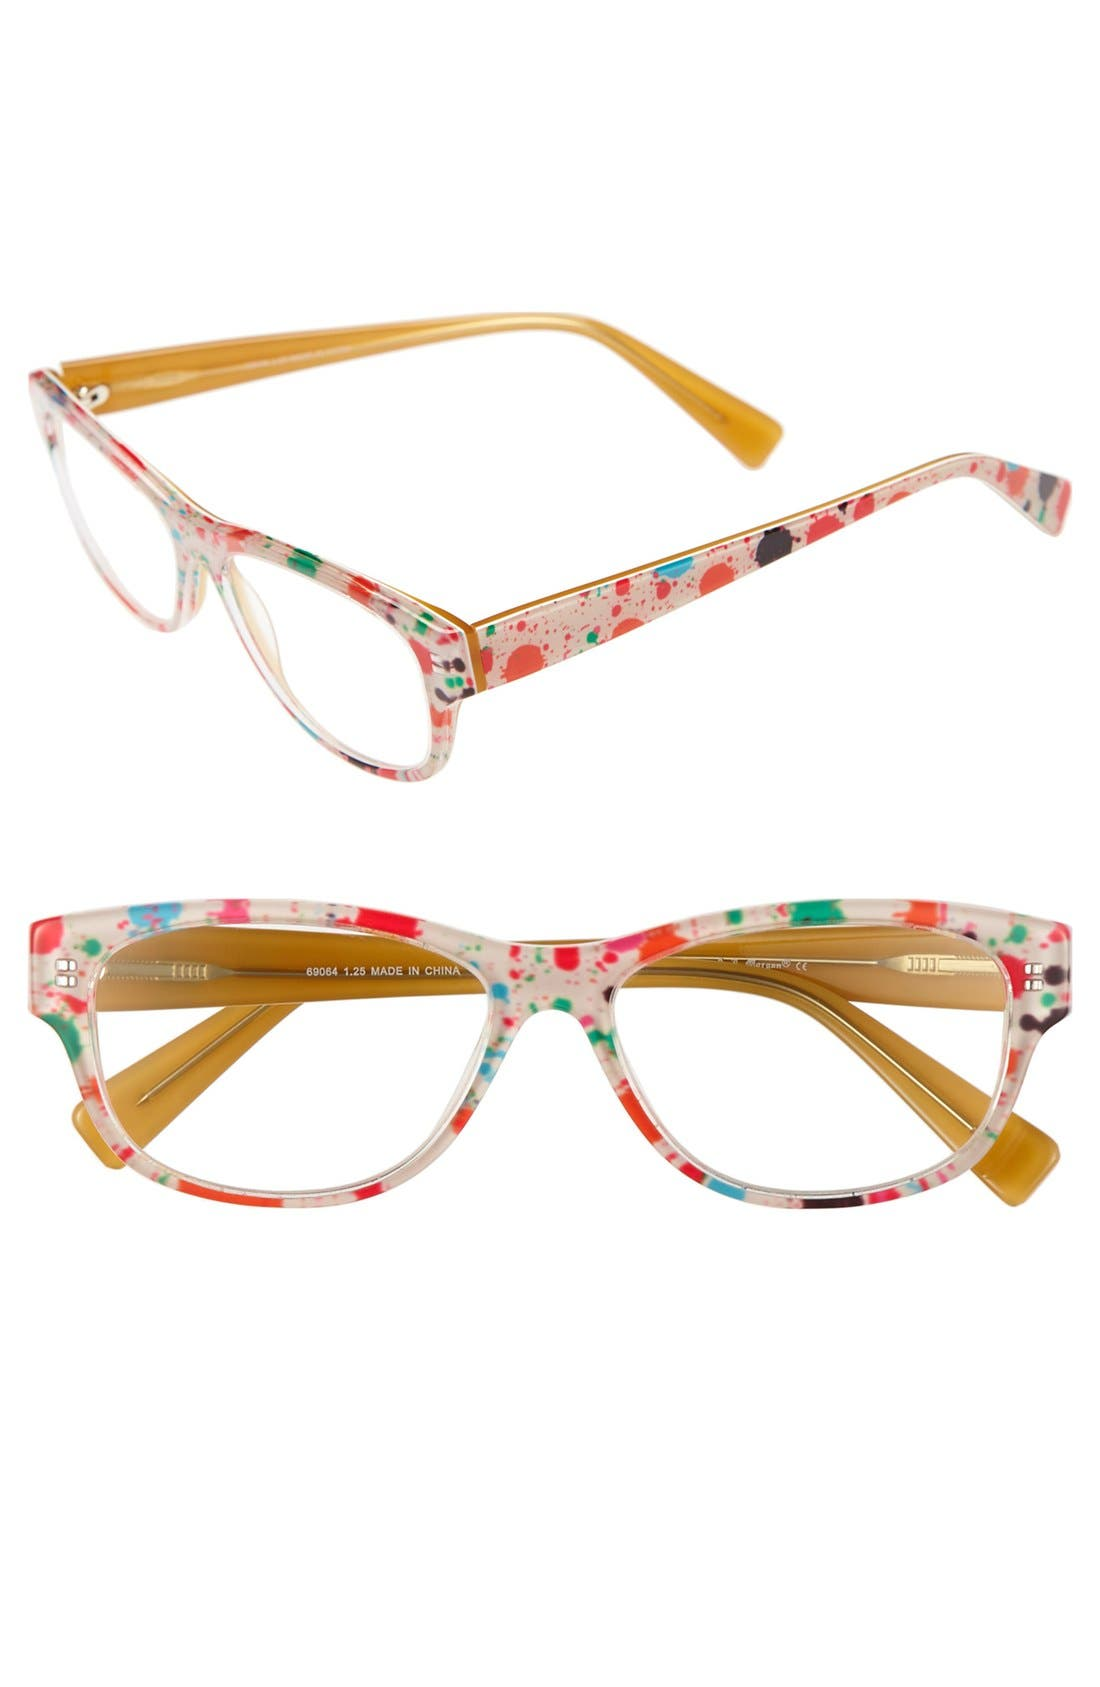 Alternate Image 1 Selected - A.J. Morgan 'Potpourri' Reading Glasses (Online Only)